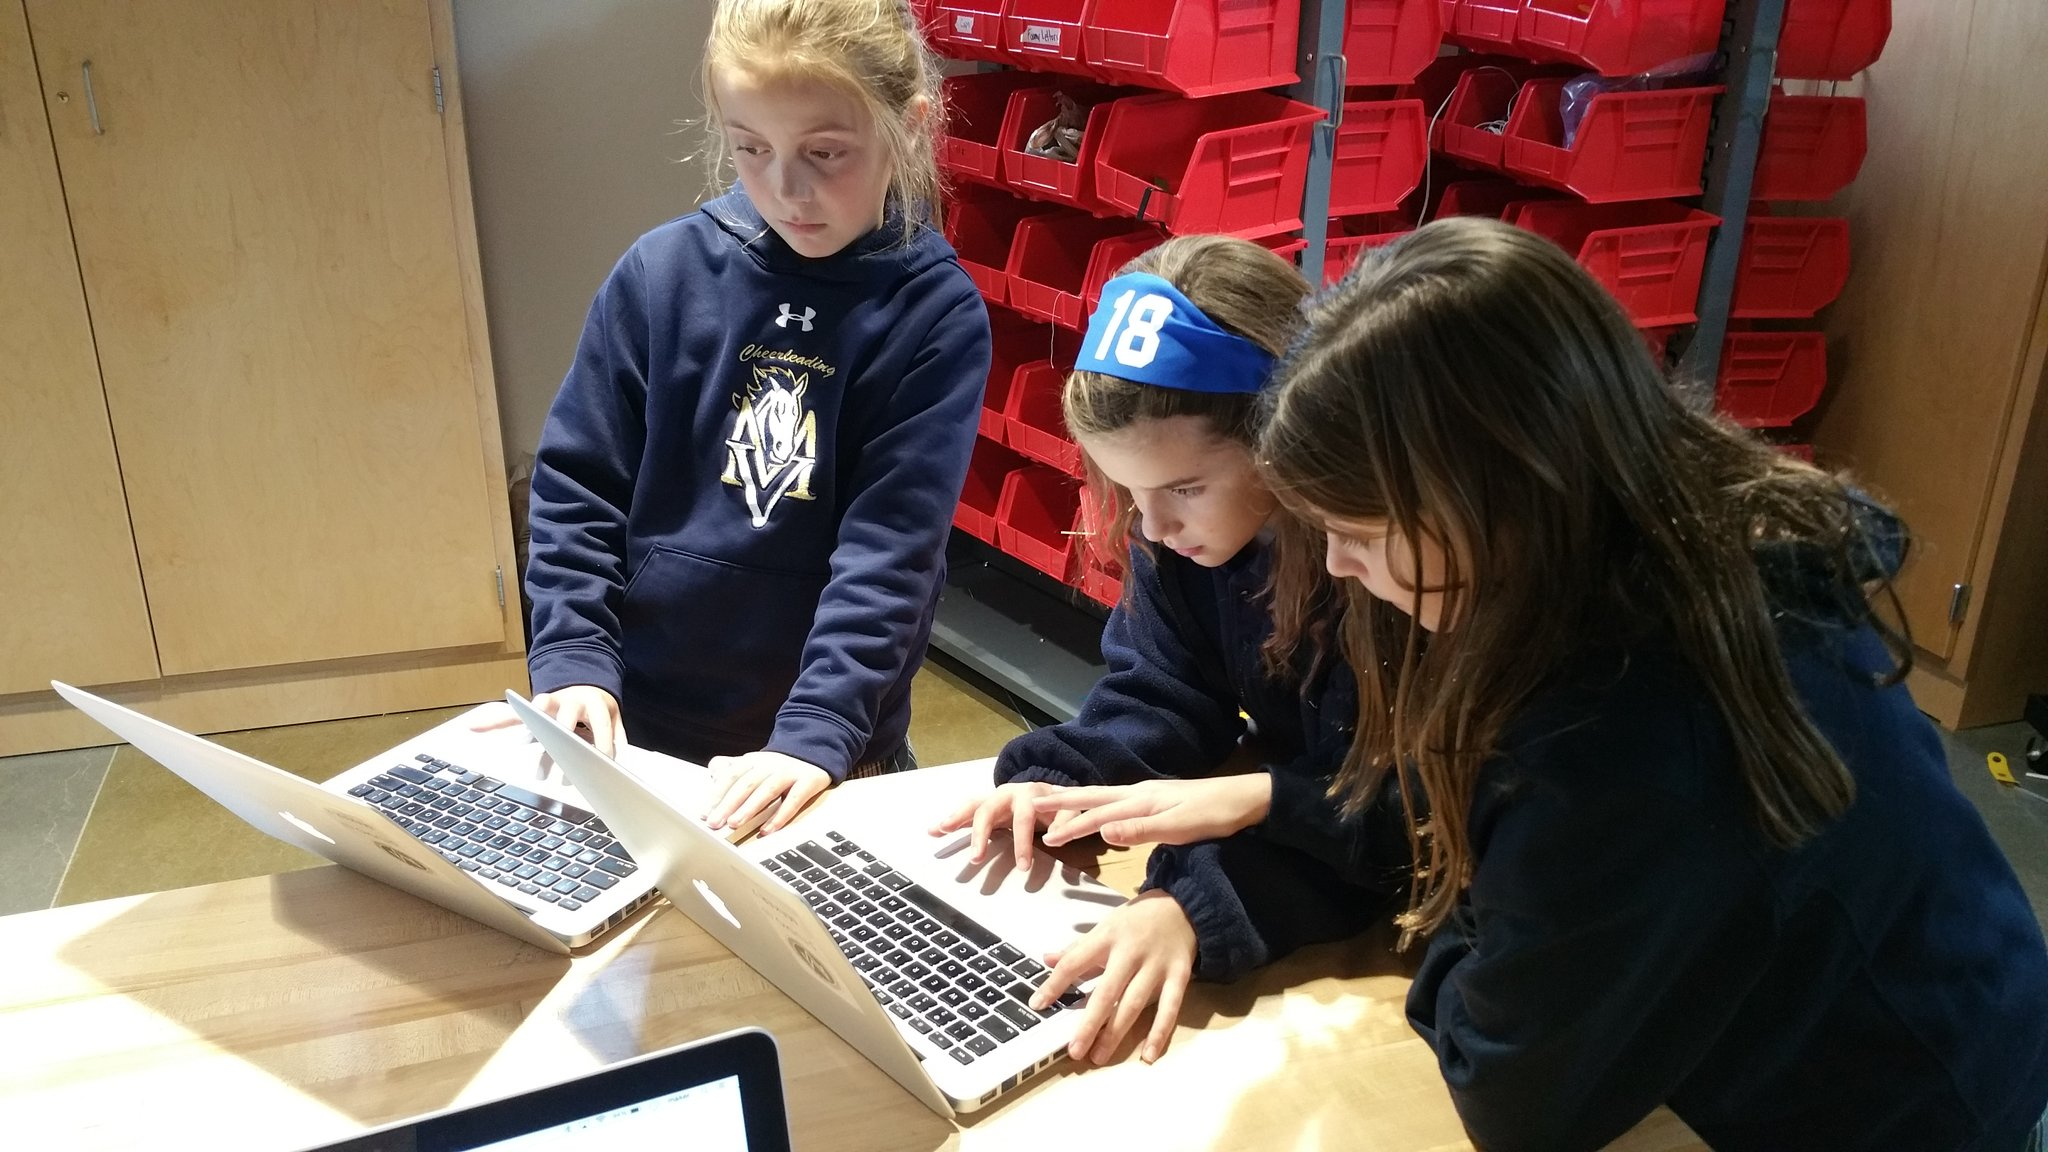 """My new favorite #kidquote: """"Don't do it for me or I won't learn how to do it myself"""" #MakerEd #elemaker #MVPSchool https://t.co/itfQnwS2WD"""